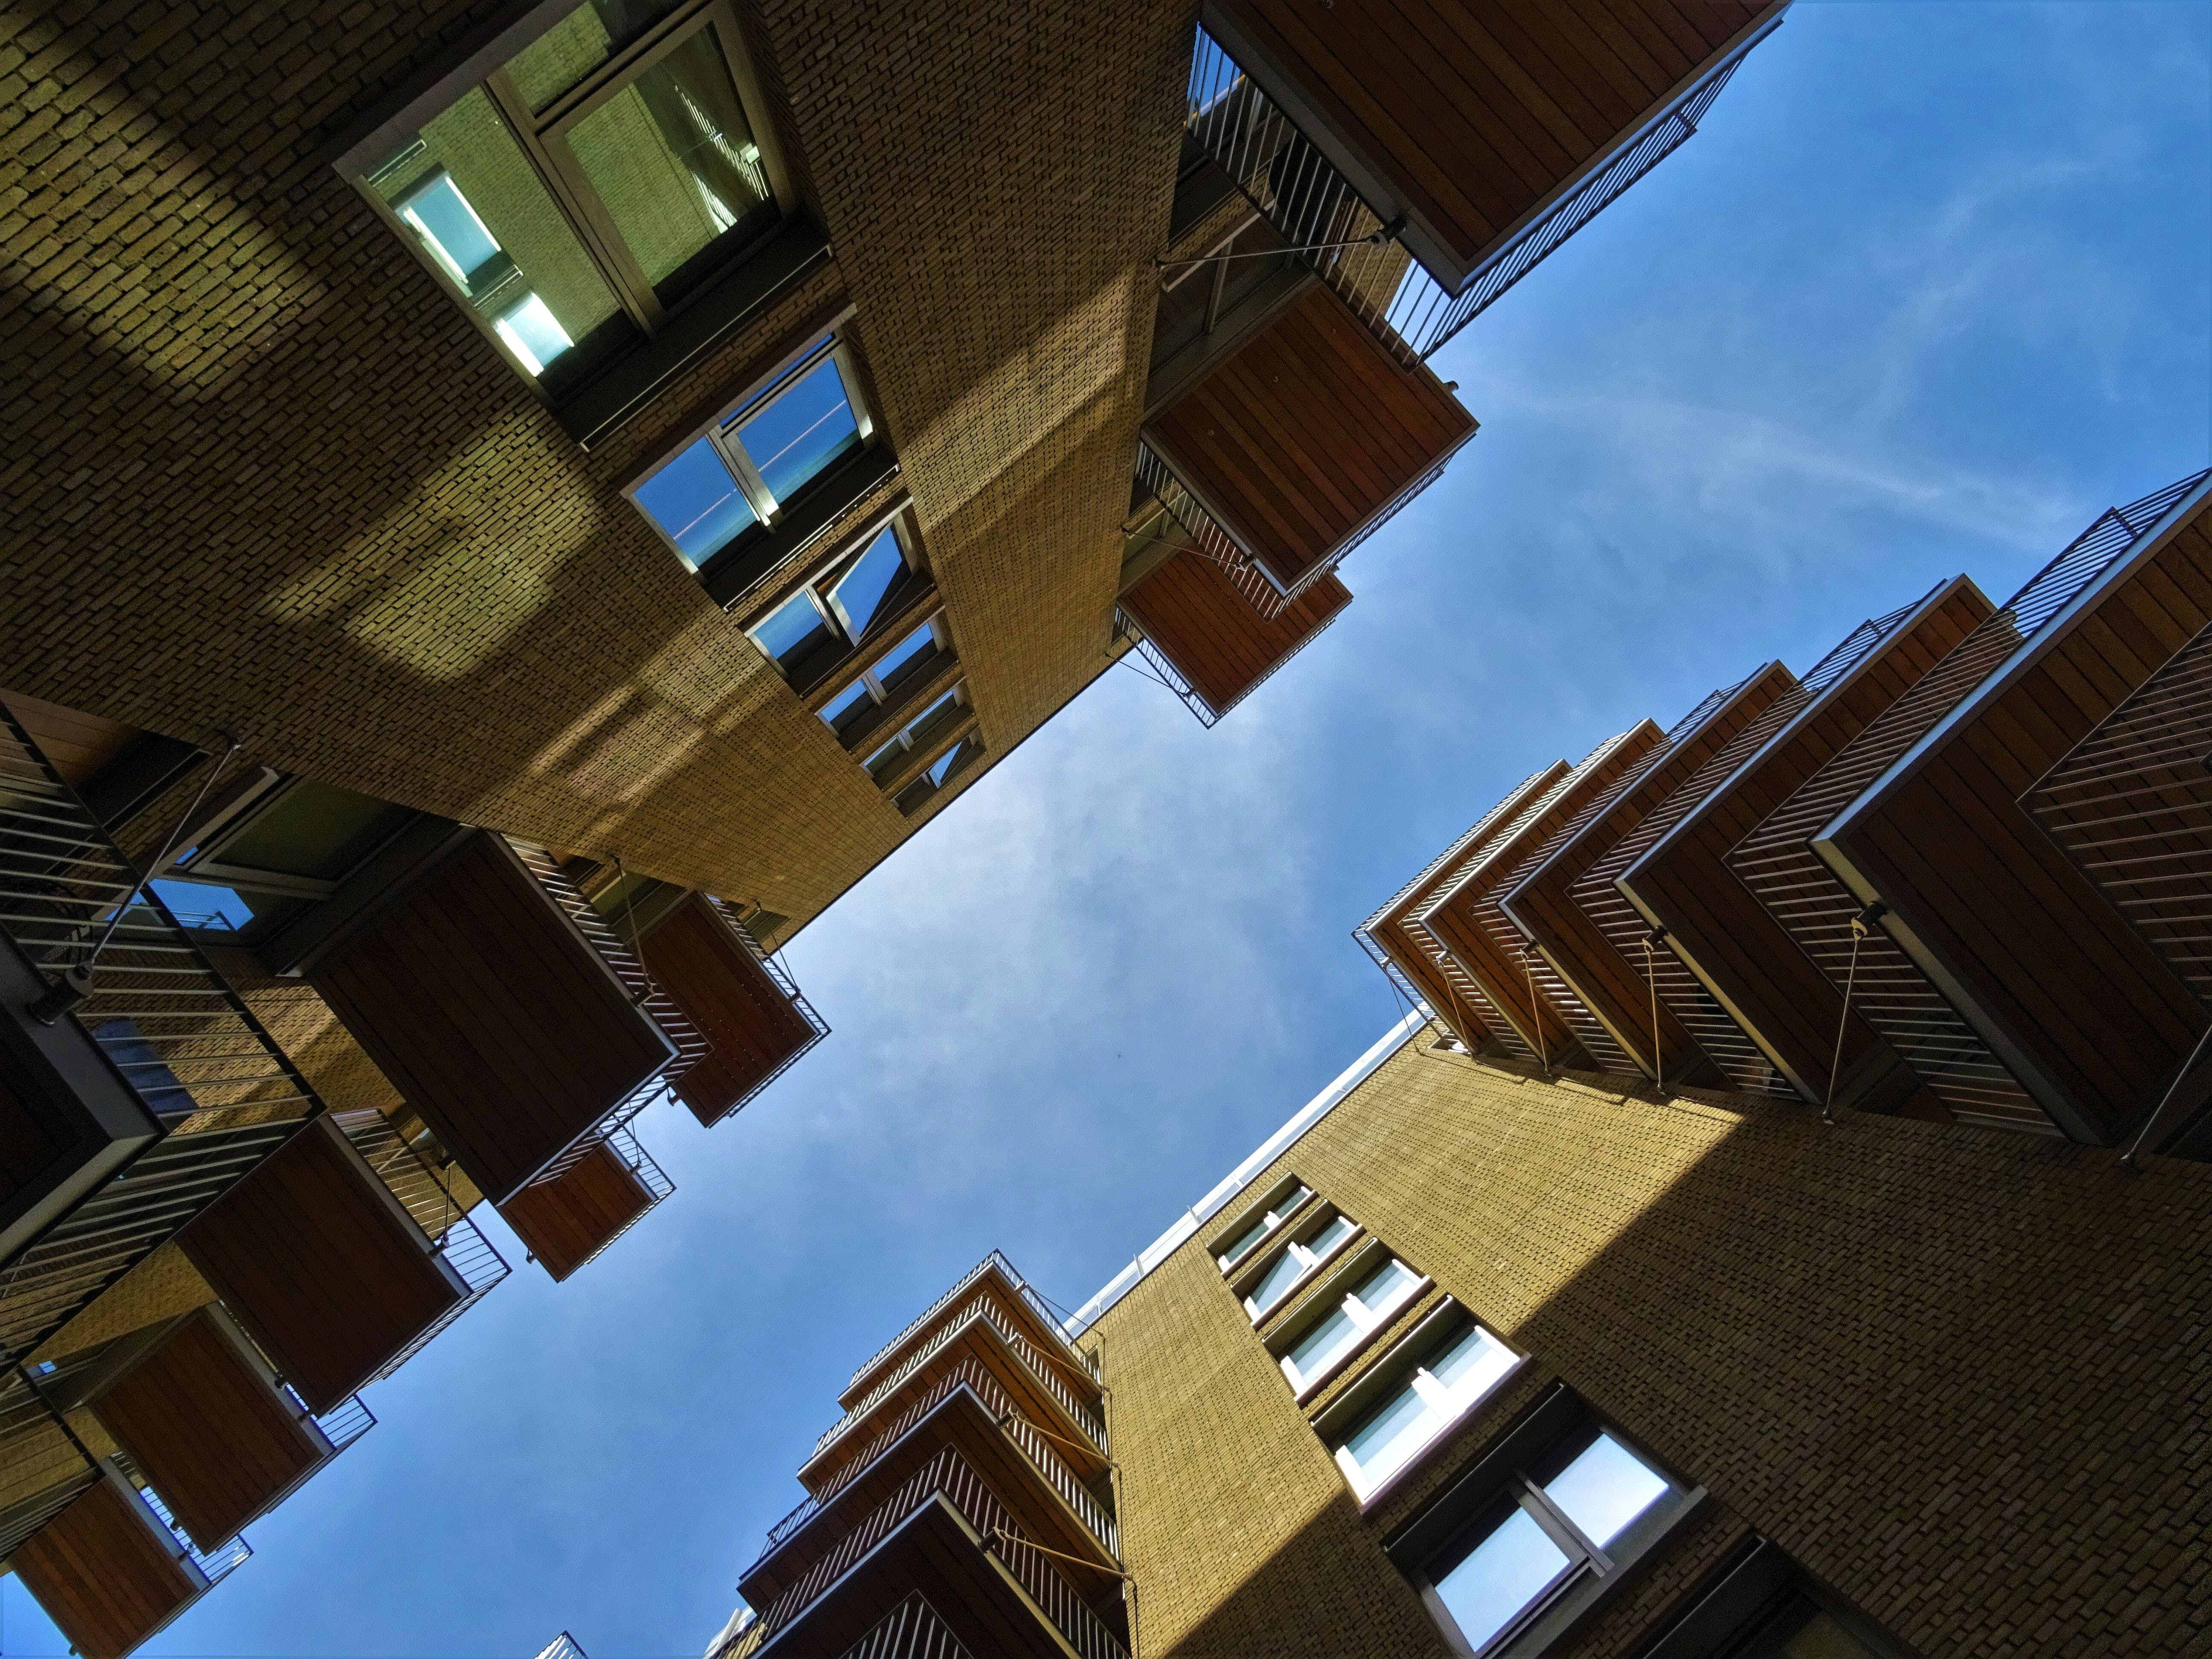 Low-angle Photography of Brown Concrete Buildings